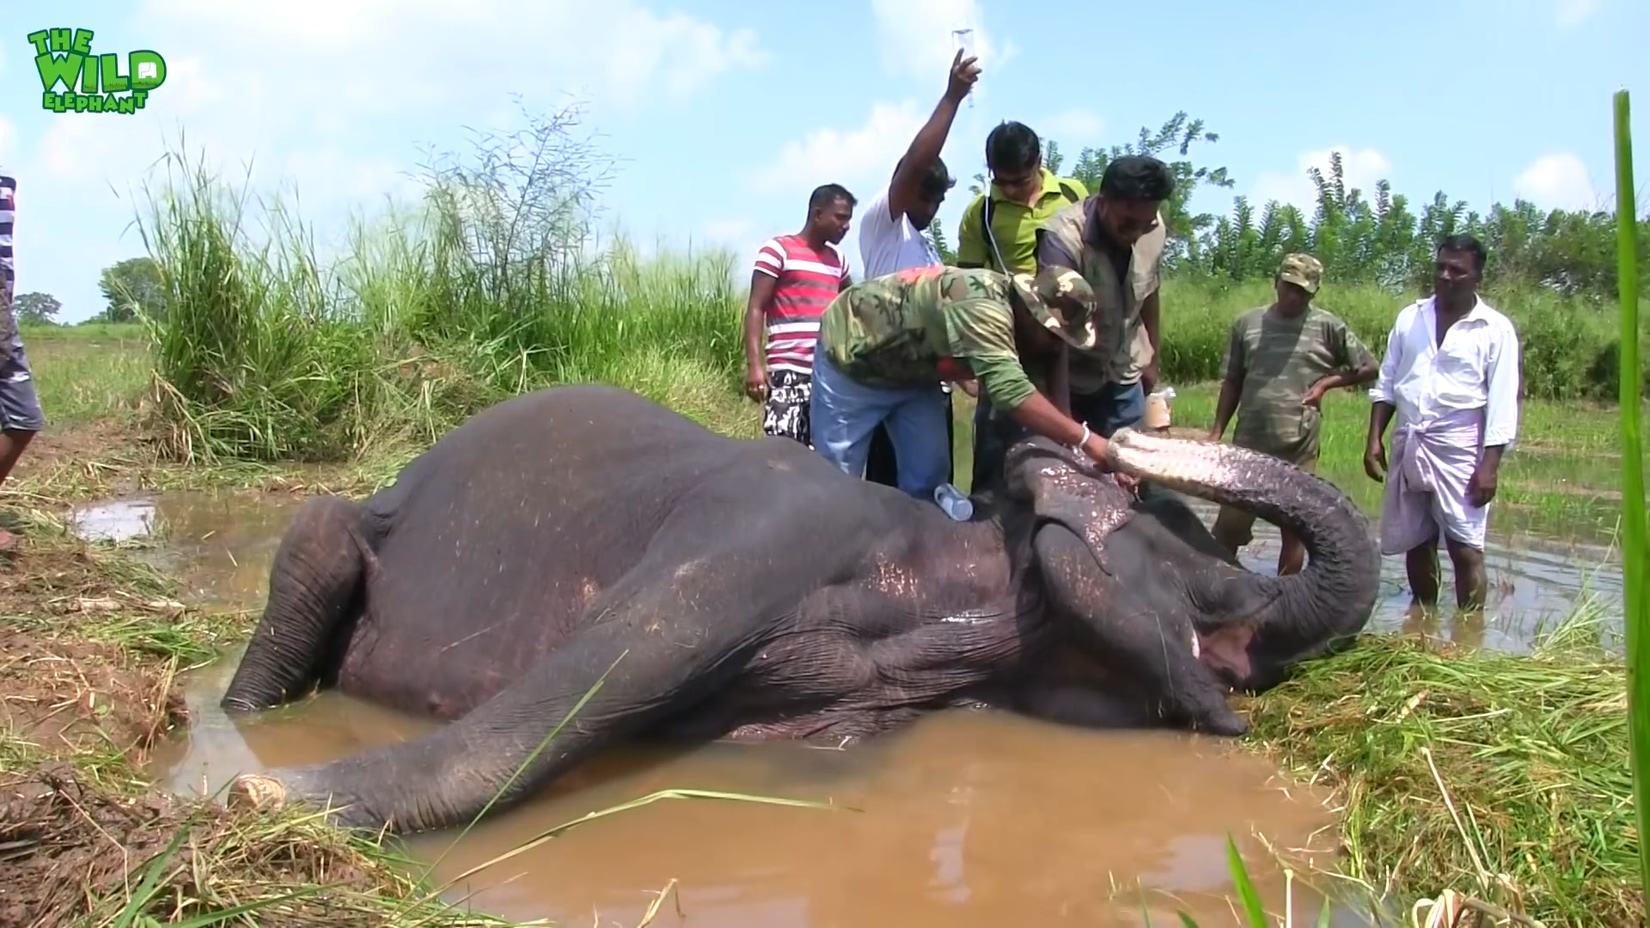 A Sick Elephant Gets Medical Attention: Wildlife deserve the best too